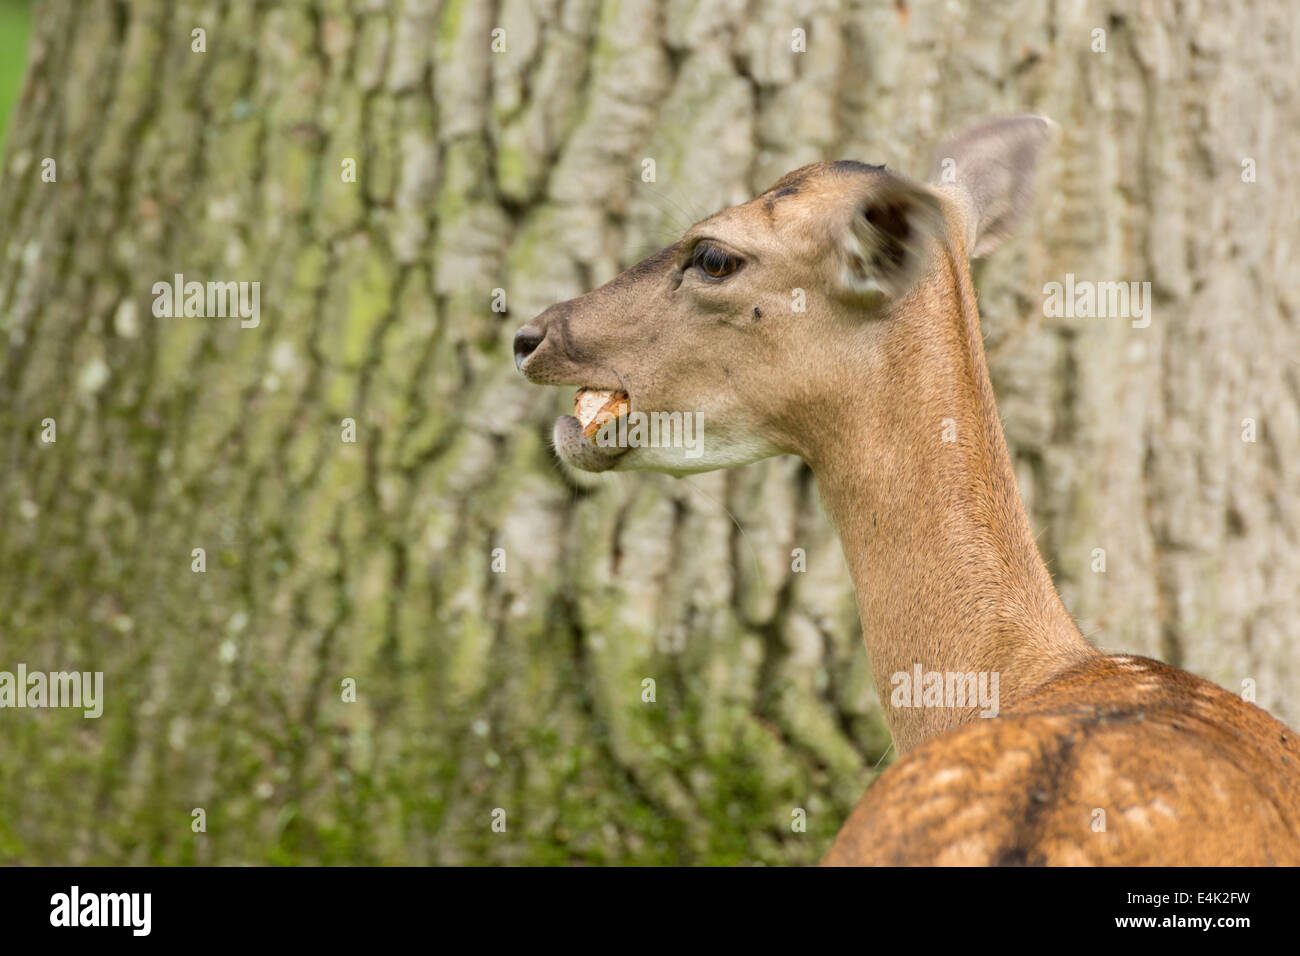 Fallow deer when eating bread on green meadow grassland in forest in summer Stock Photo